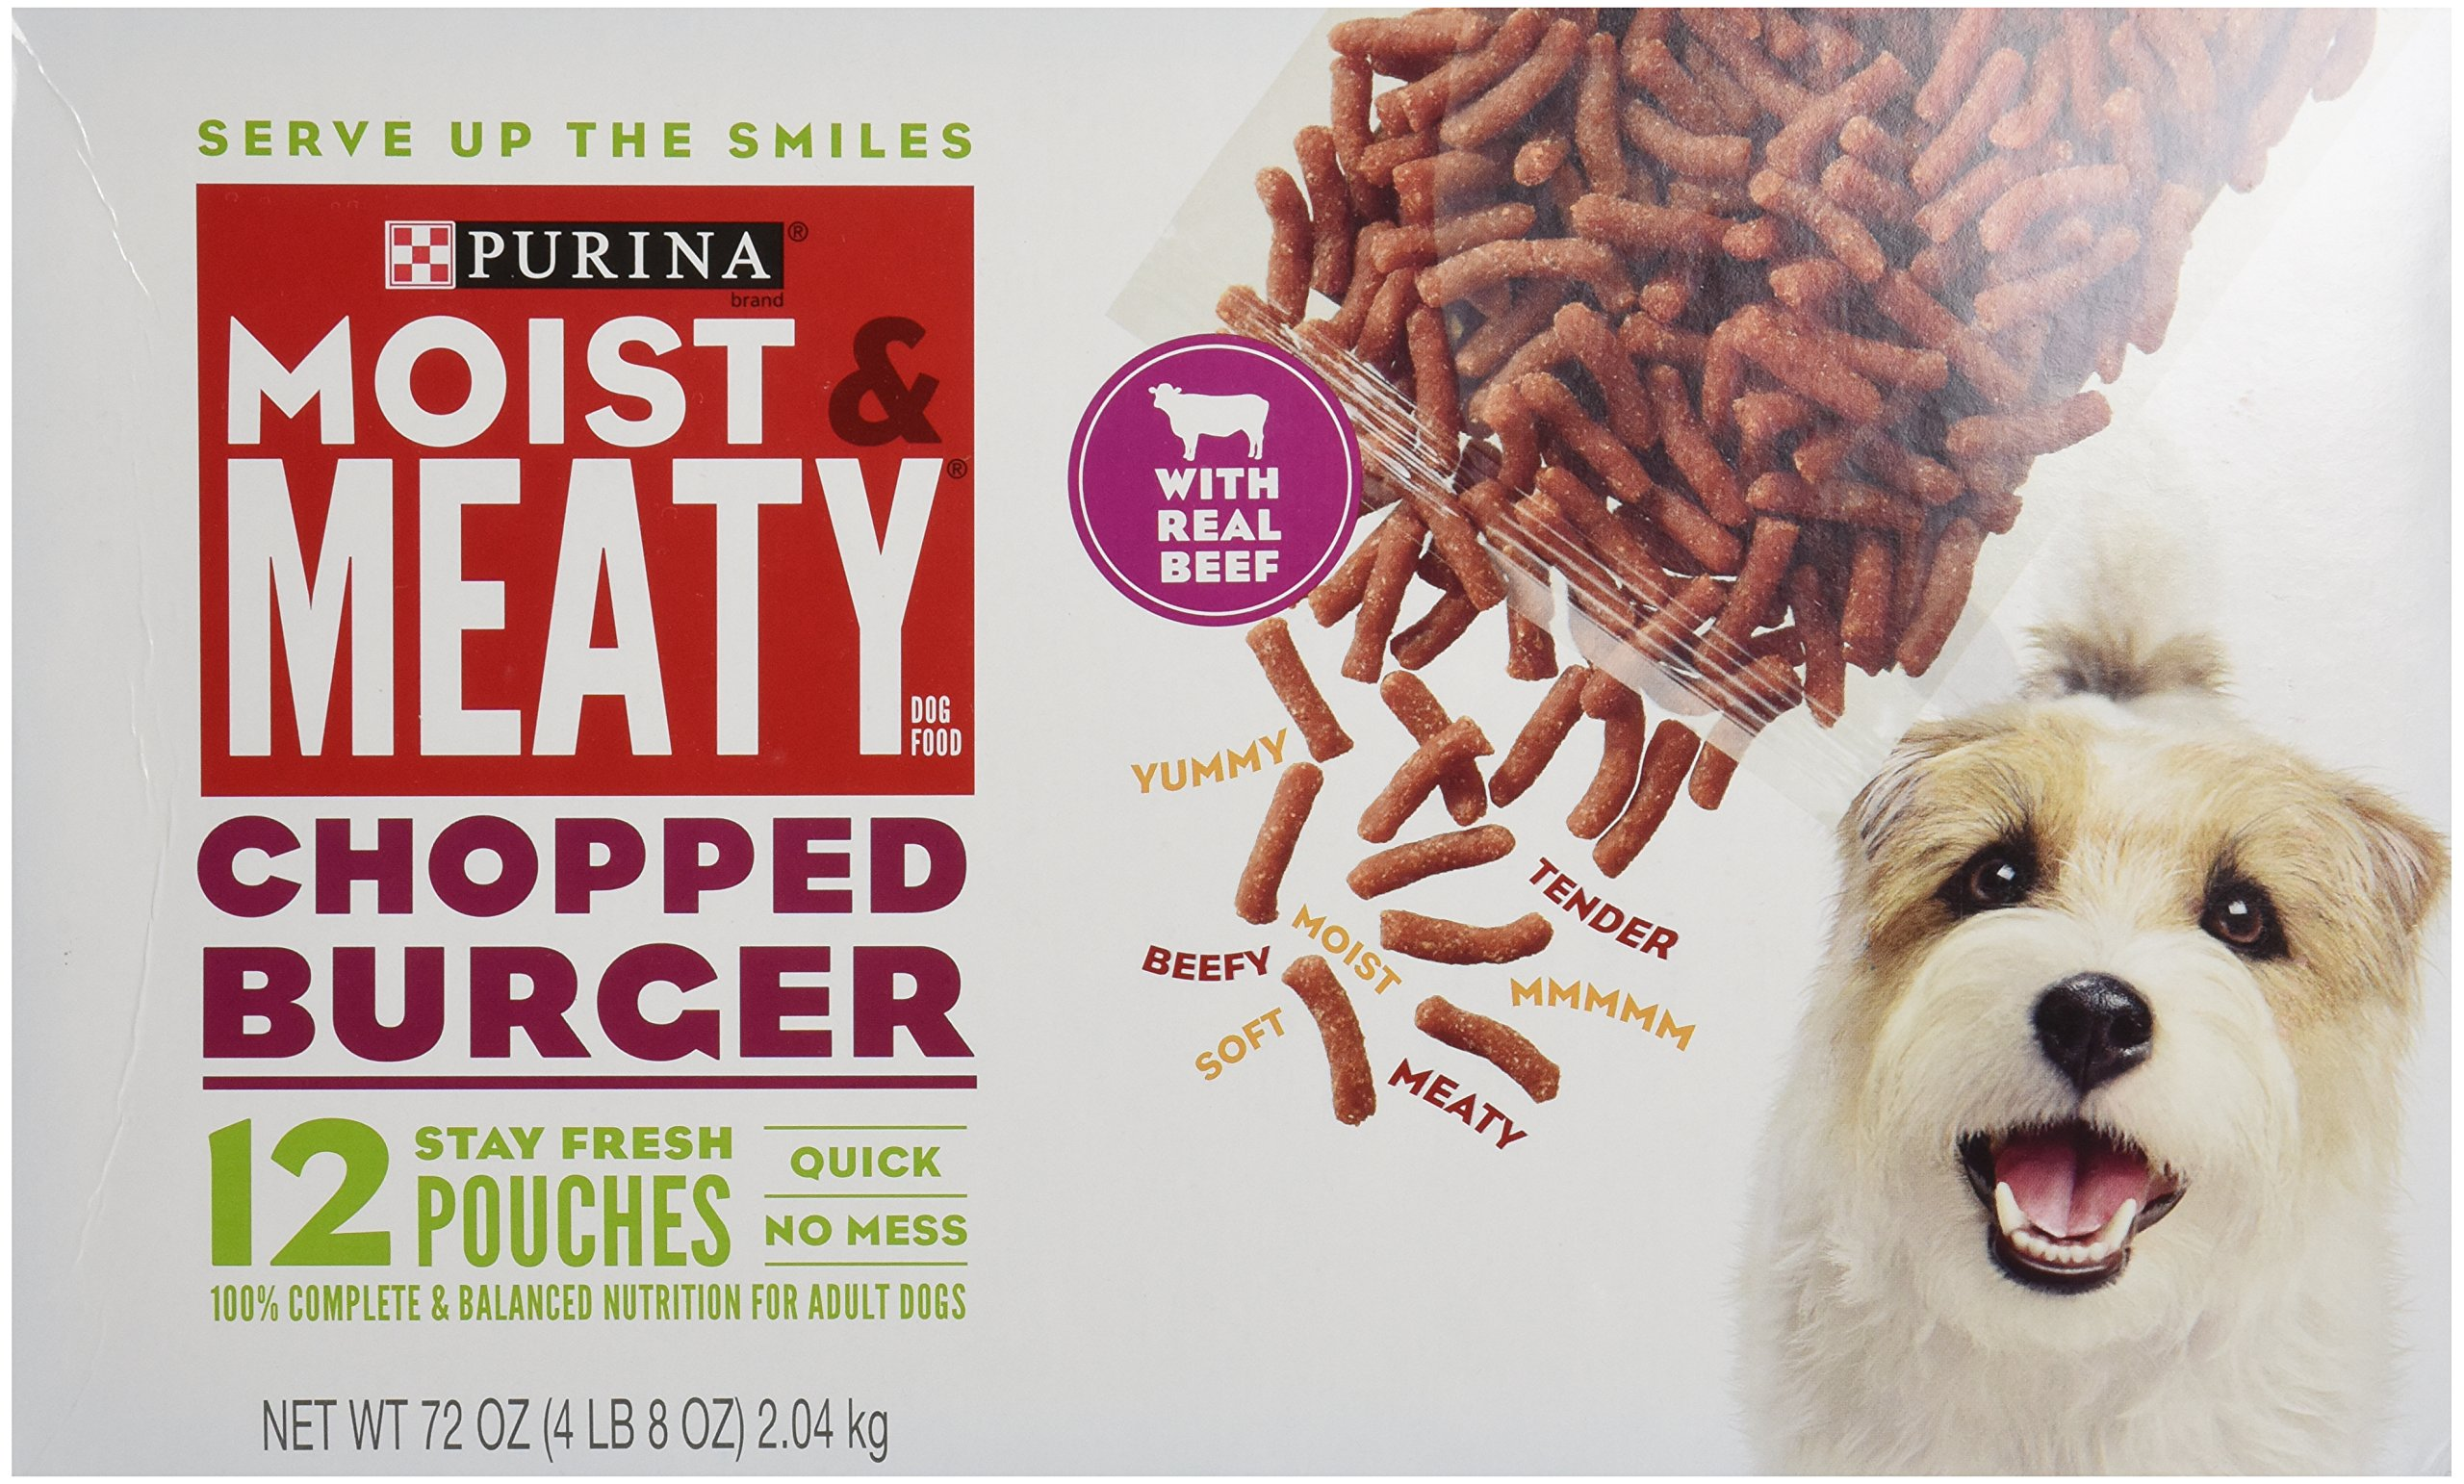 Purina Moist & Meaty Dog Food, Chopped Burger, 12 Pouches, 6 oz each